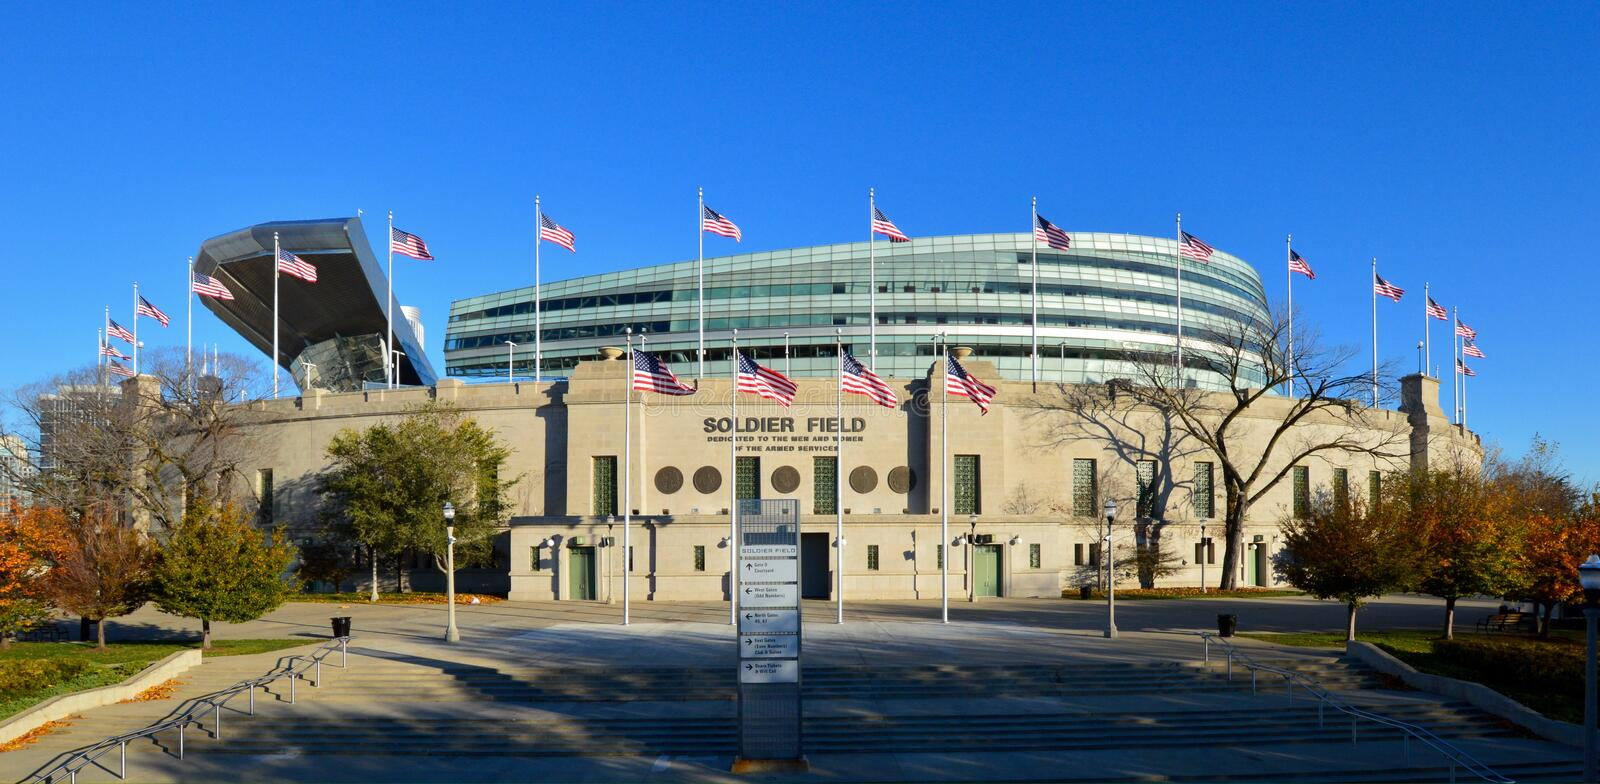 Municipal Grant Park Stadium. This is a picture of Soldier Field in Chicago, Illinois, the oldest stadium in r the NFL. Designed by Holabird & Roch and modeled stock image